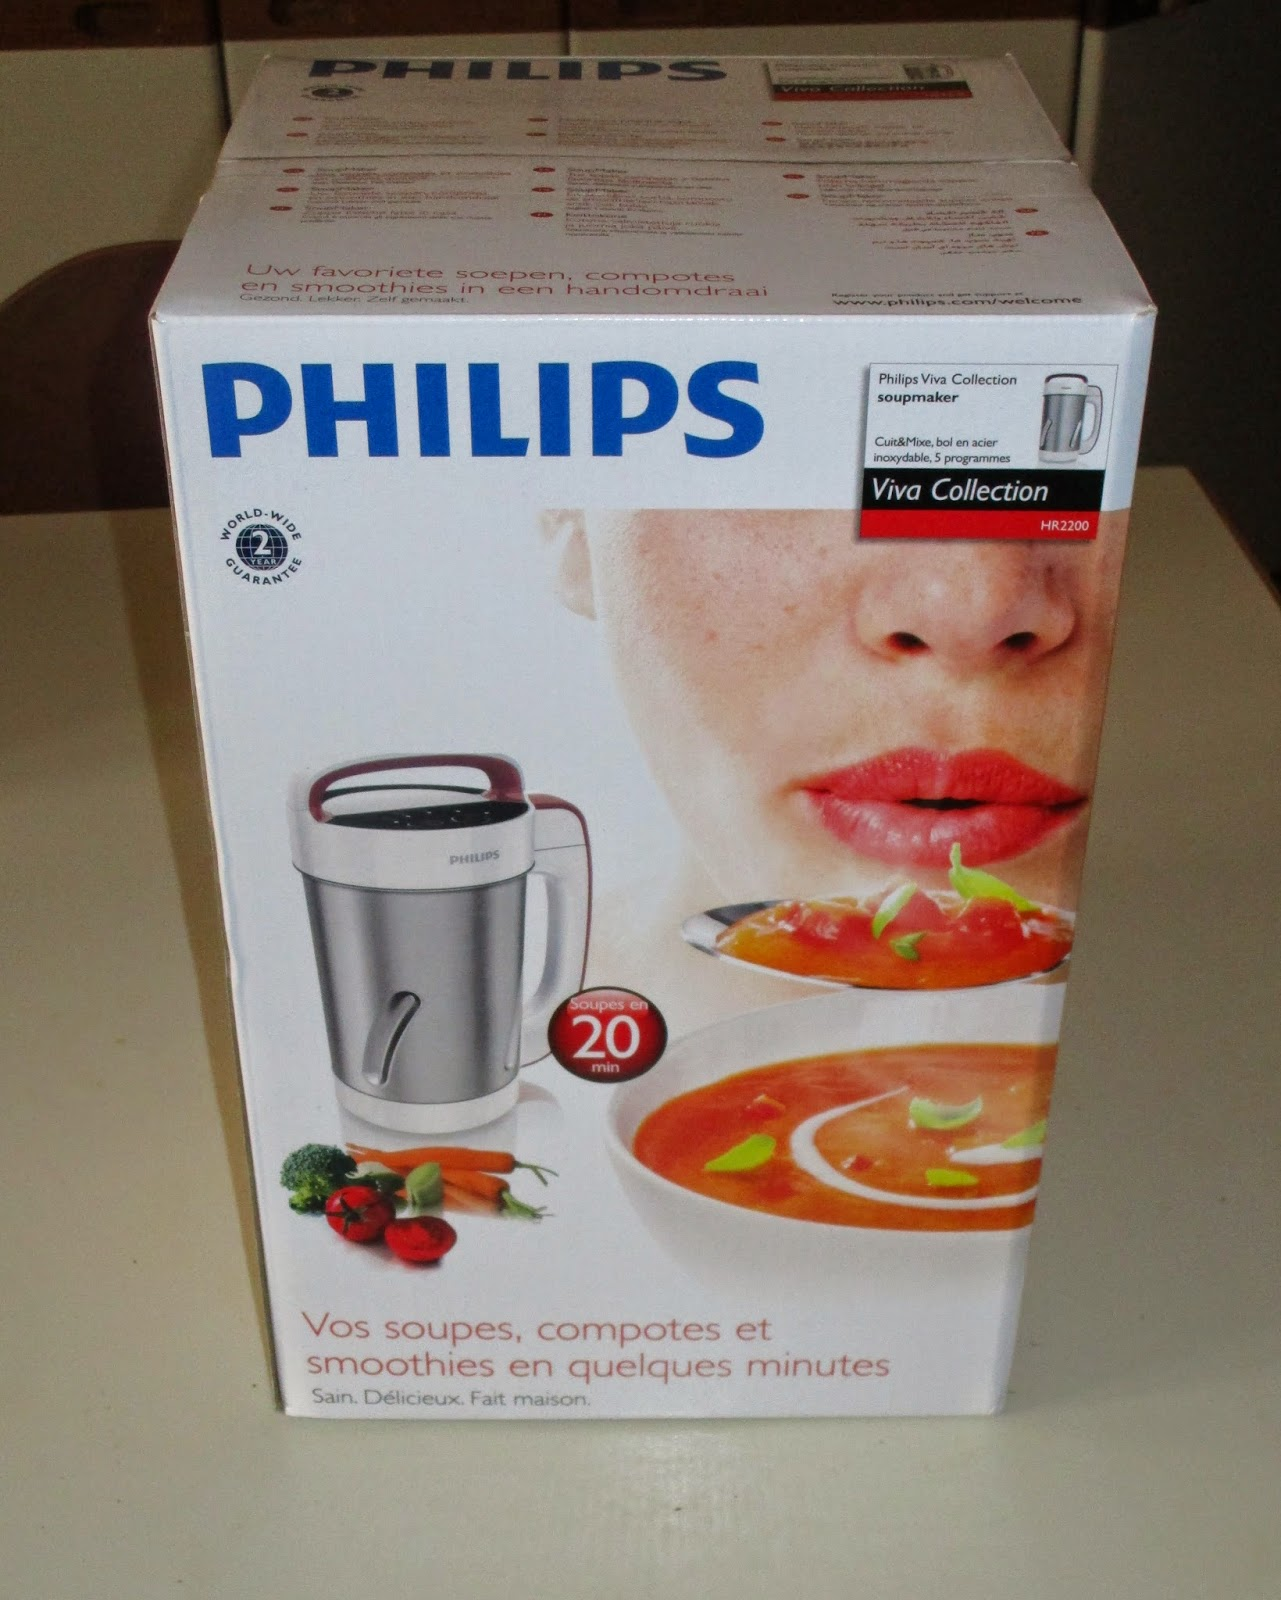 vi presento la mia soup maker philips